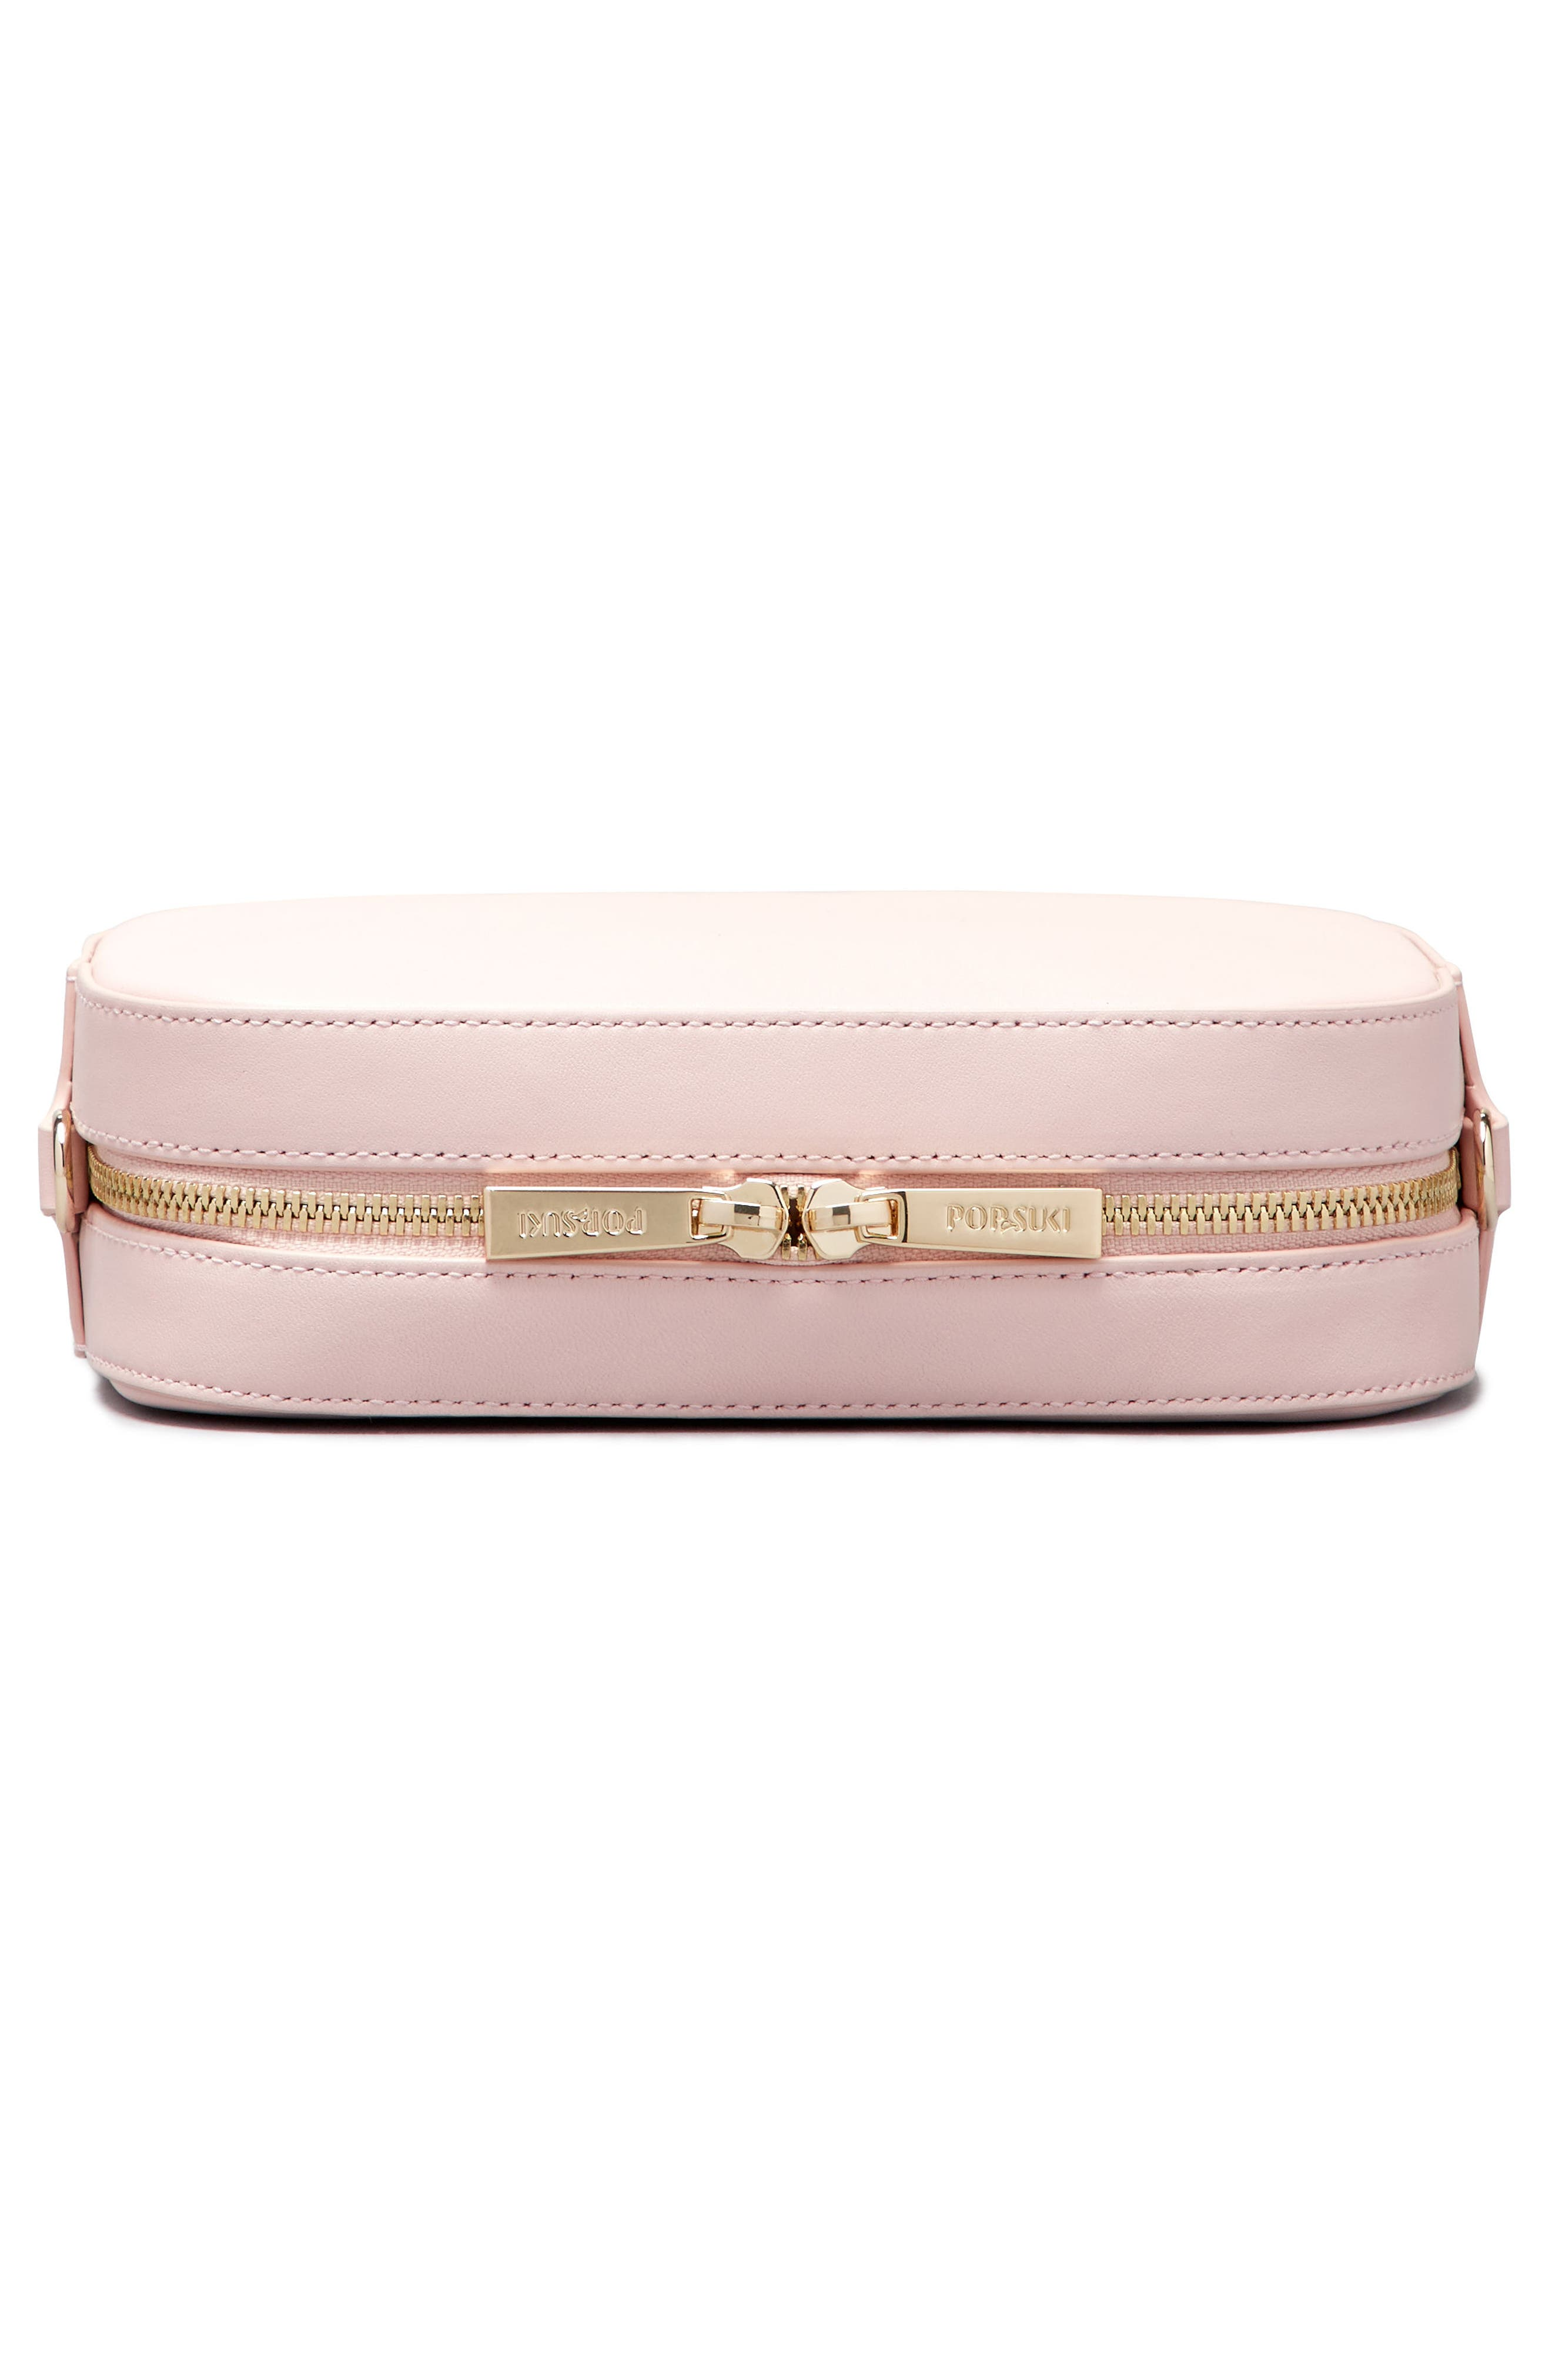 Bigger Leather Camera Bag,                             Alternate thumbnail 4, color,                             Cotton Candy